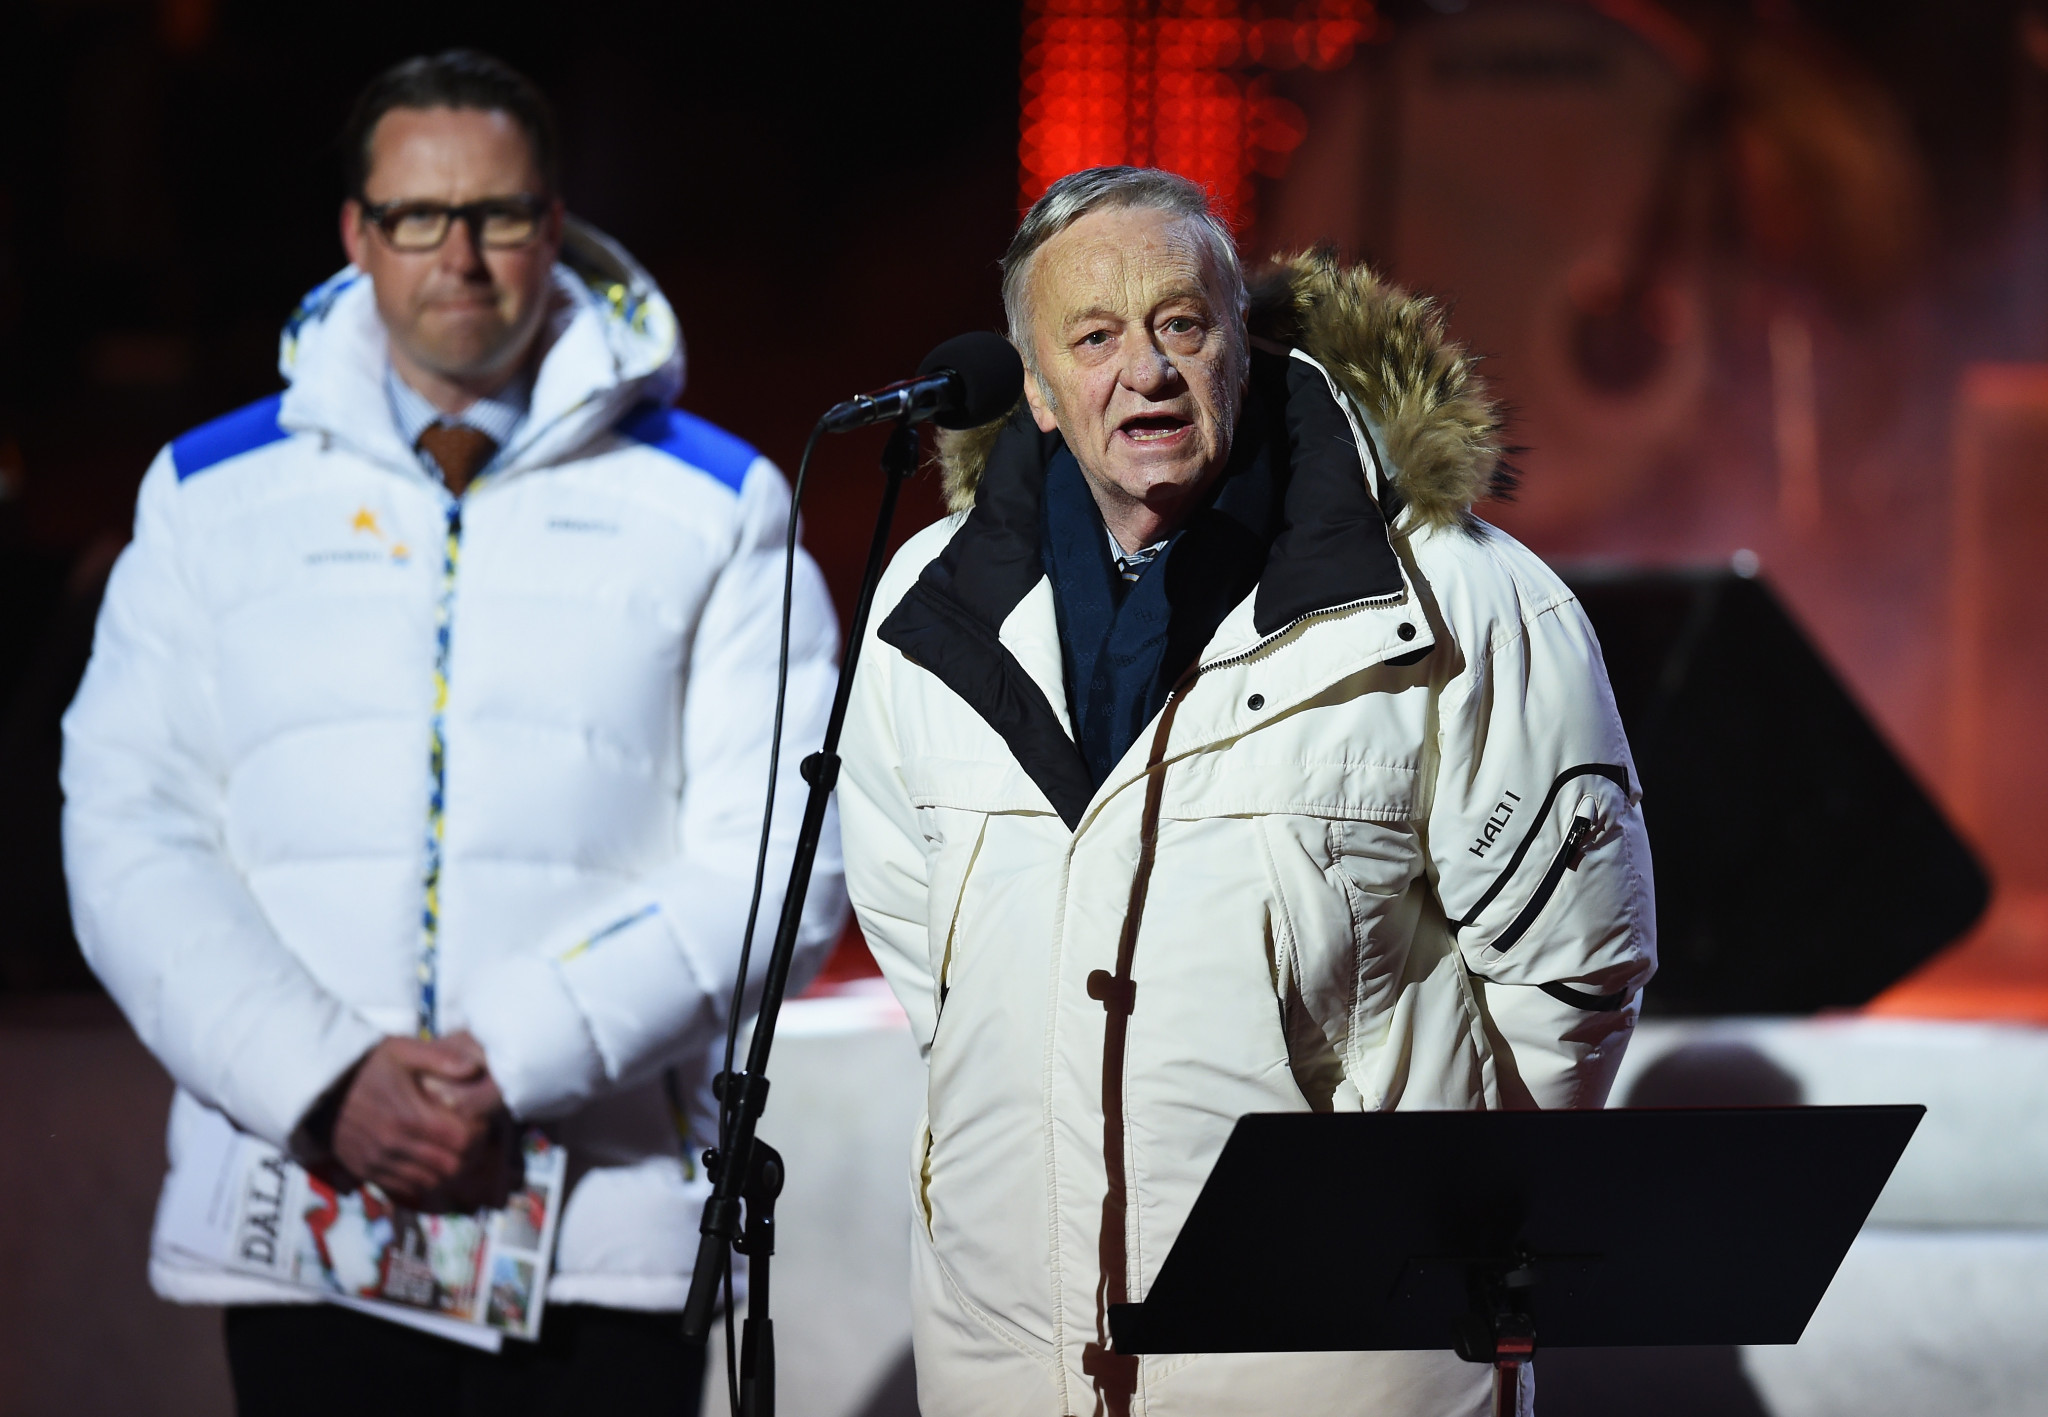 Årjes has hailed the work of Gian-Franco Kasper who has been in charge of the FIS since 1998 ©Getty Images